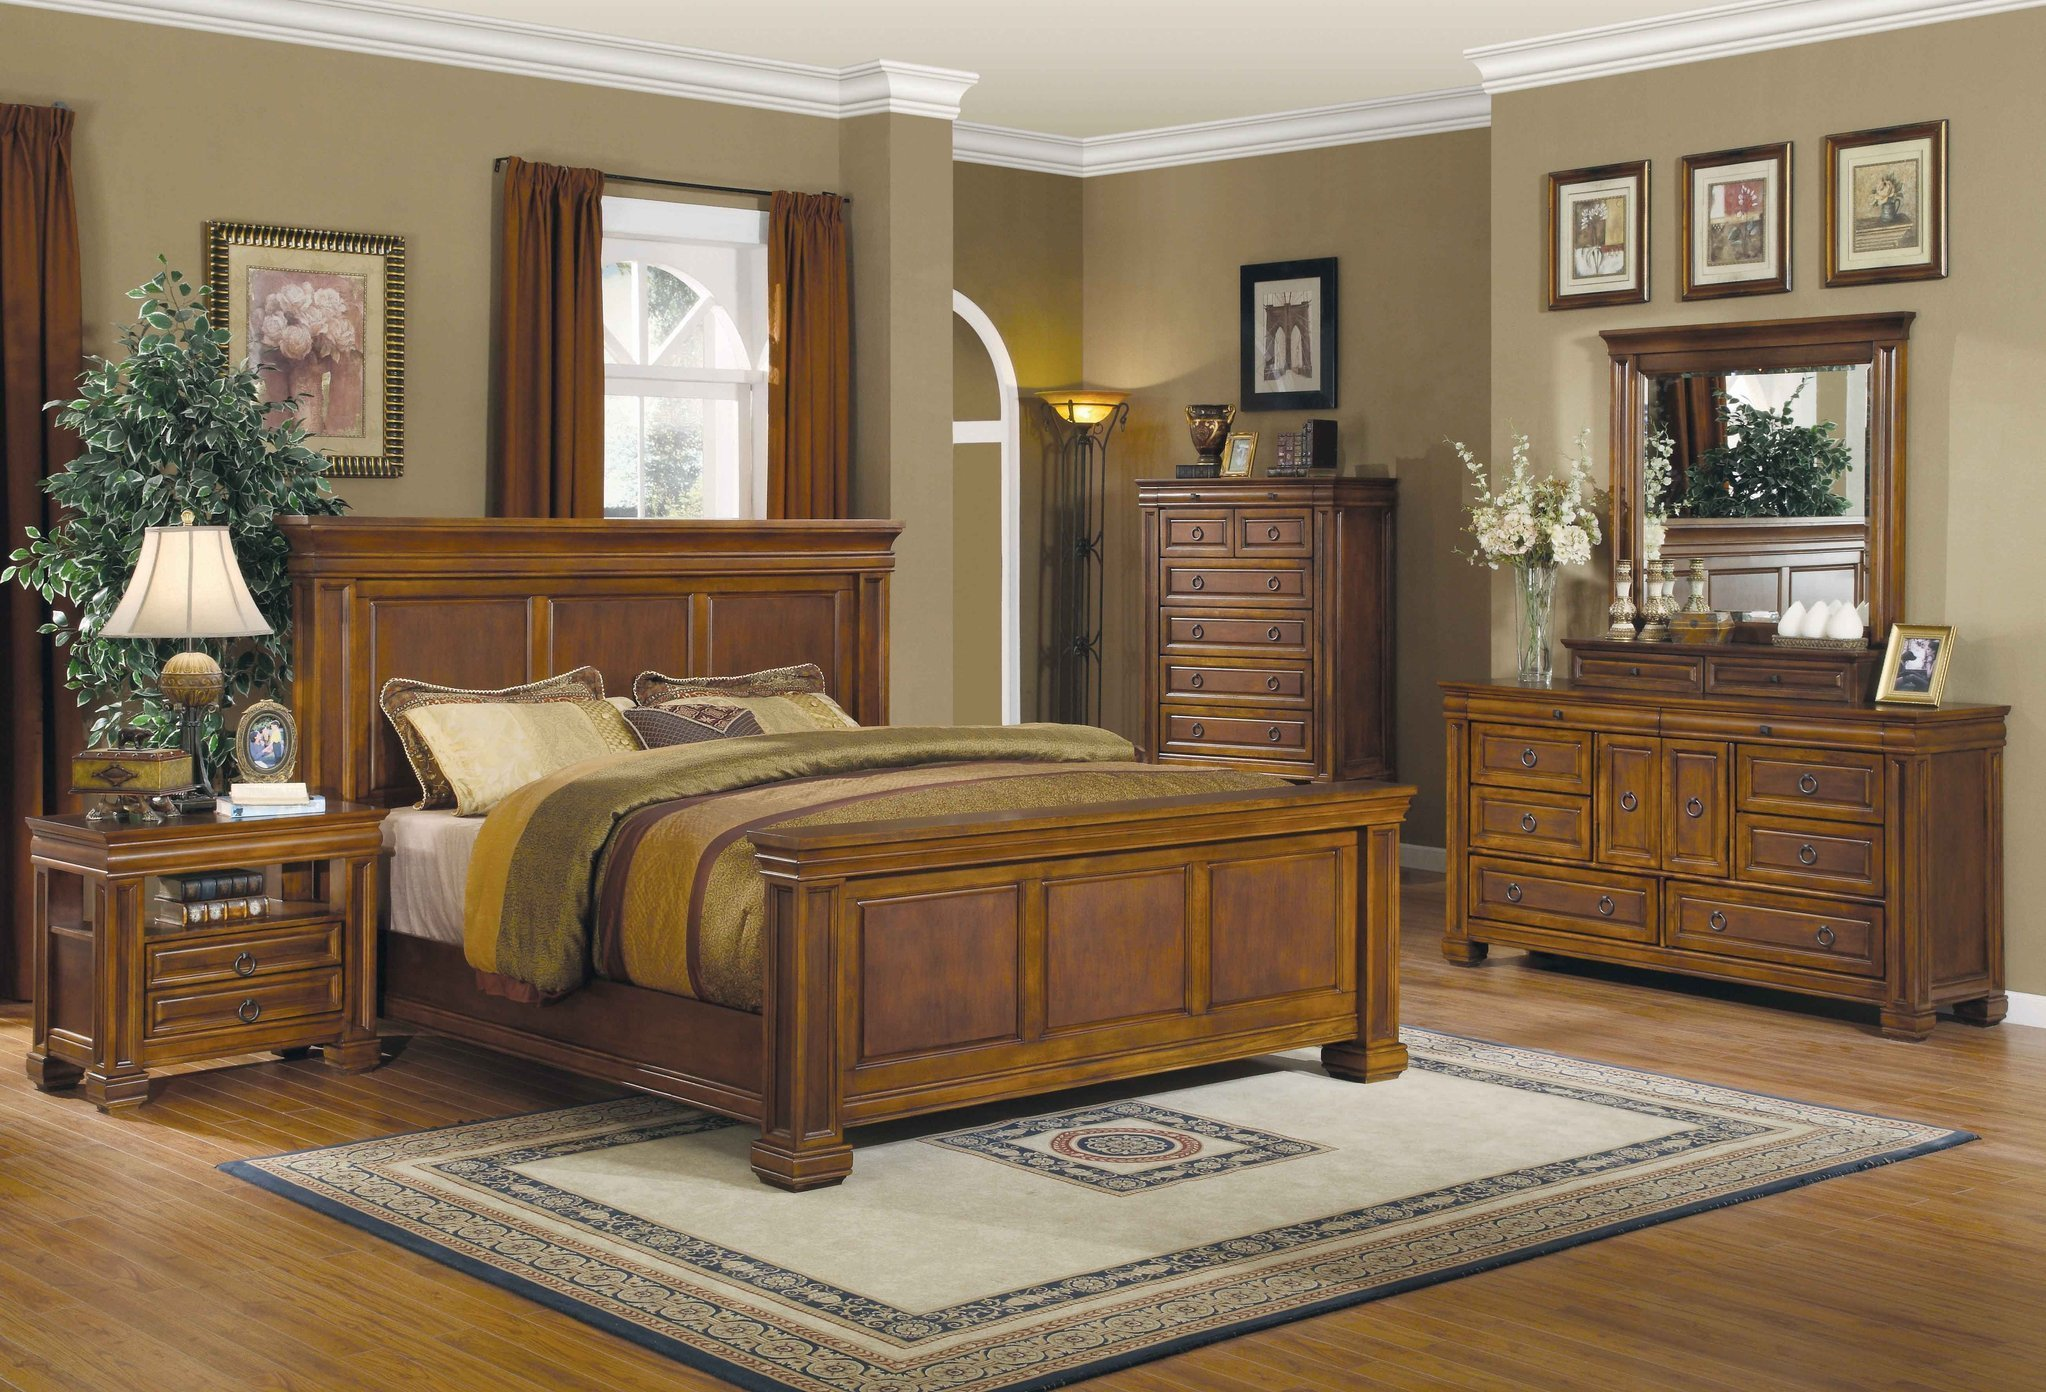 Best Antique Rustic Bedroom Furniture Wood King And Queen With Pictures